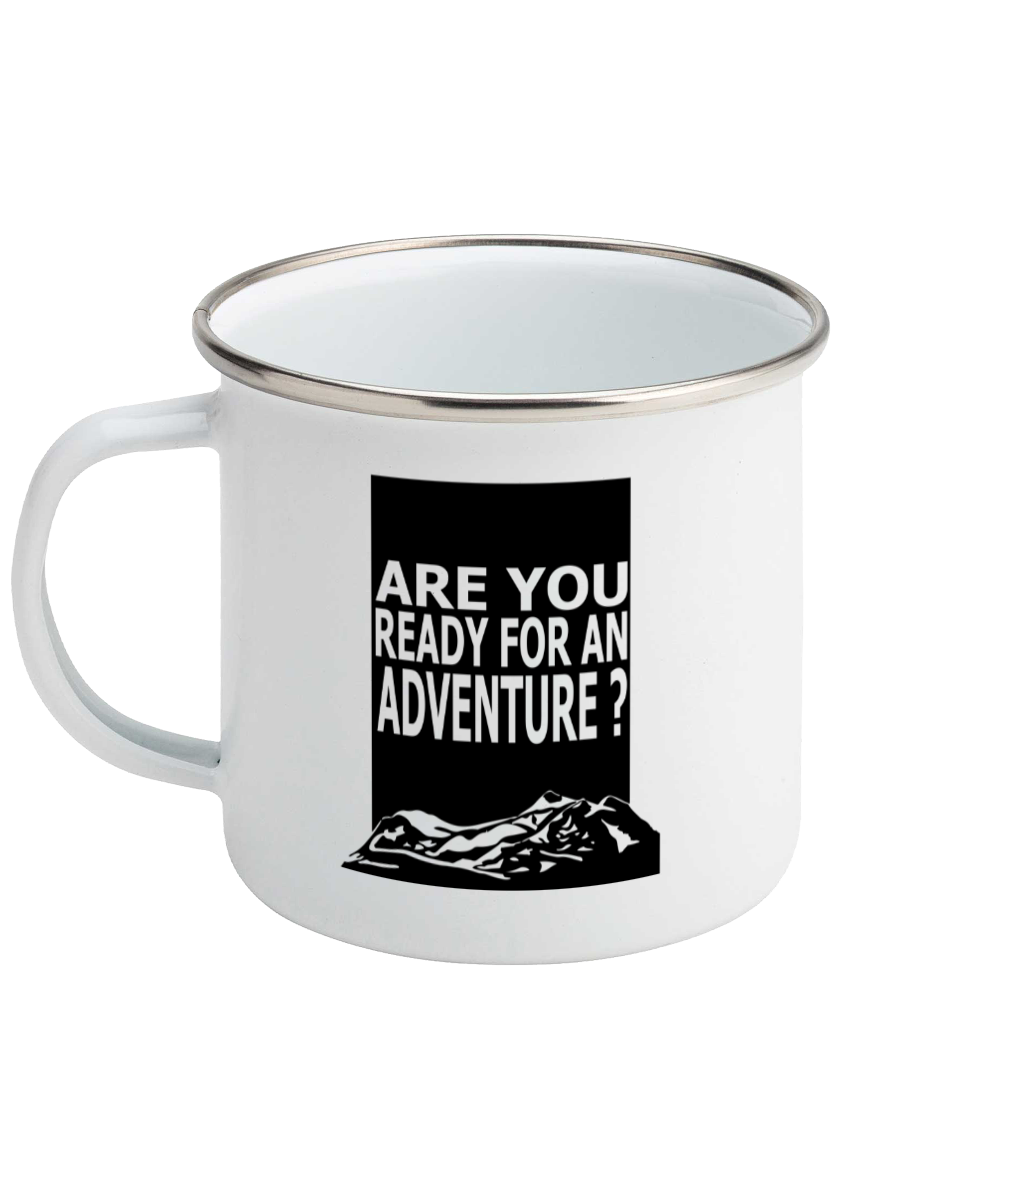 Are You Ready For Adventure - Mountains - Enamel Mug, Suggested Products, Pen and Ink Studios Adventure Clothing